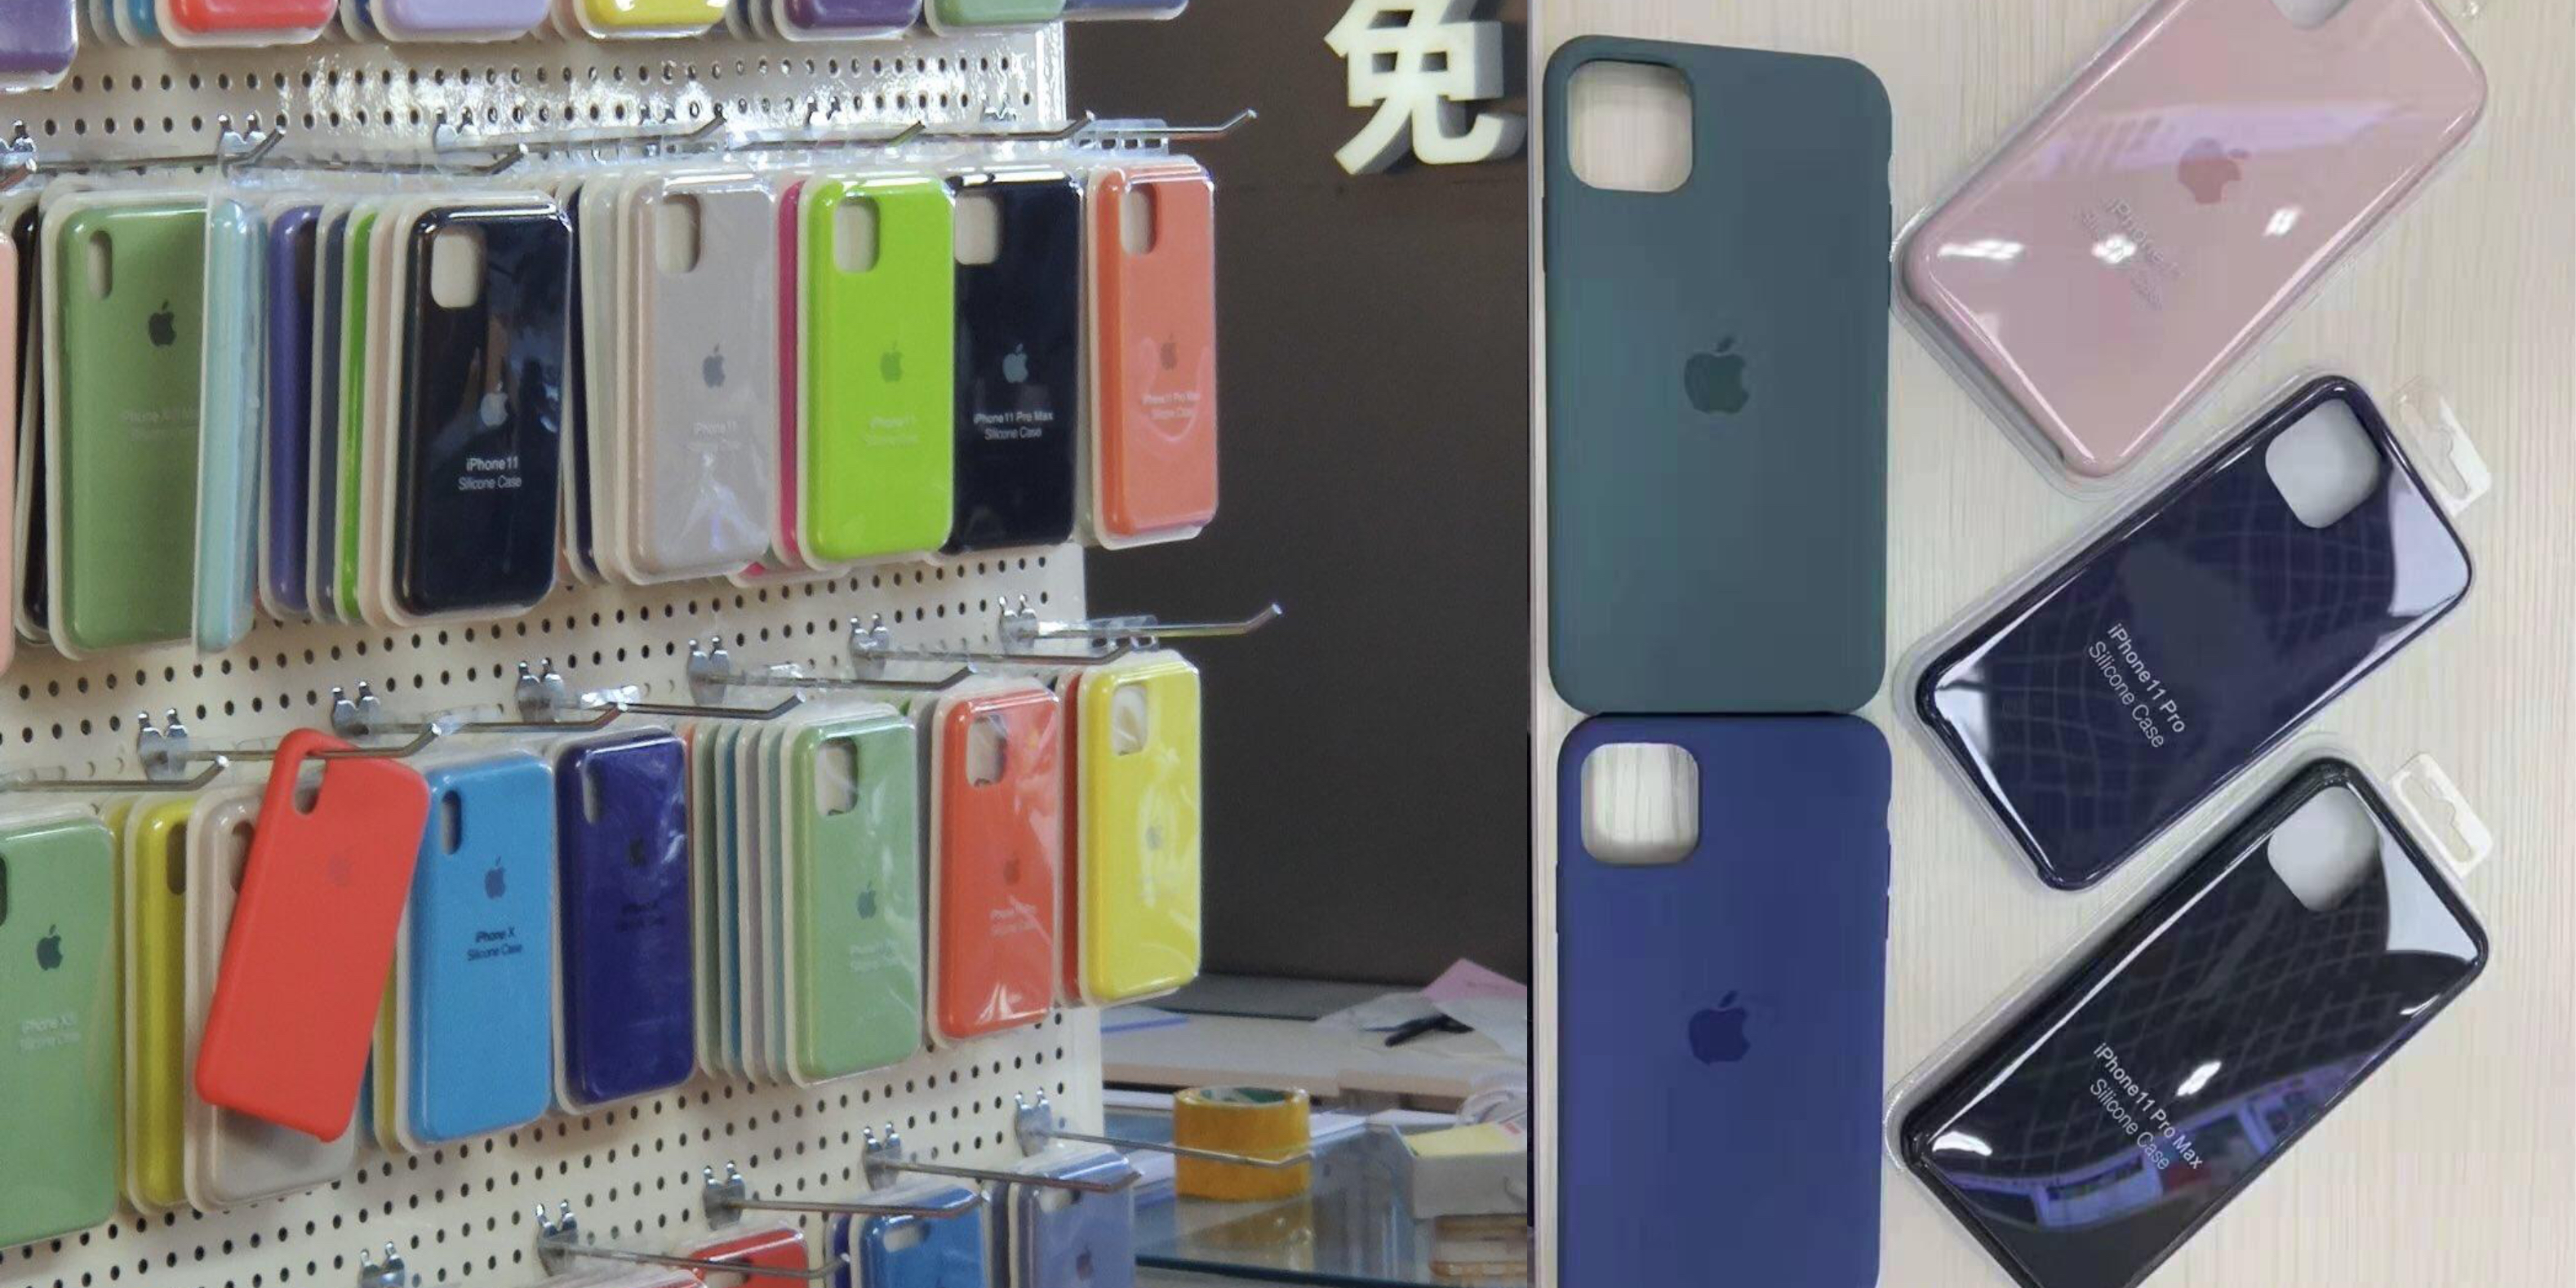 Cases Show Iphone 11 Design Including New Position Of Apple Logo